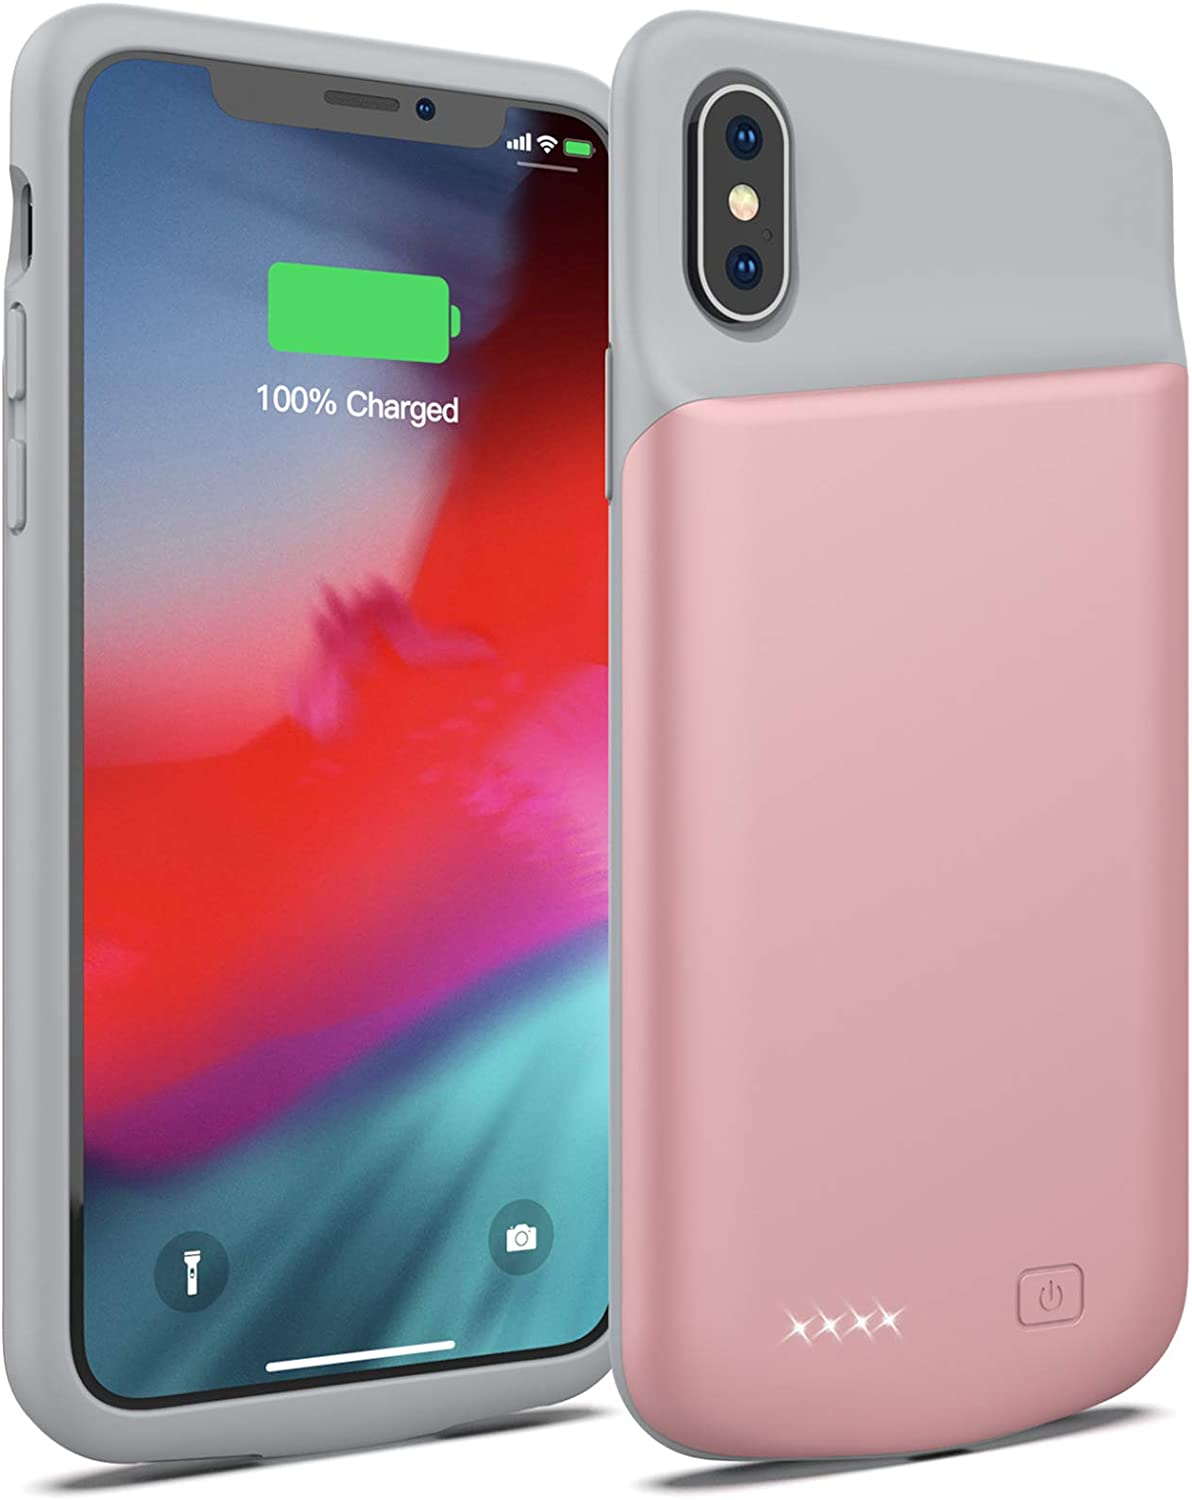 Battery Case shopping for iPhone X 4000mAh XS New item Portable Protective Chargi